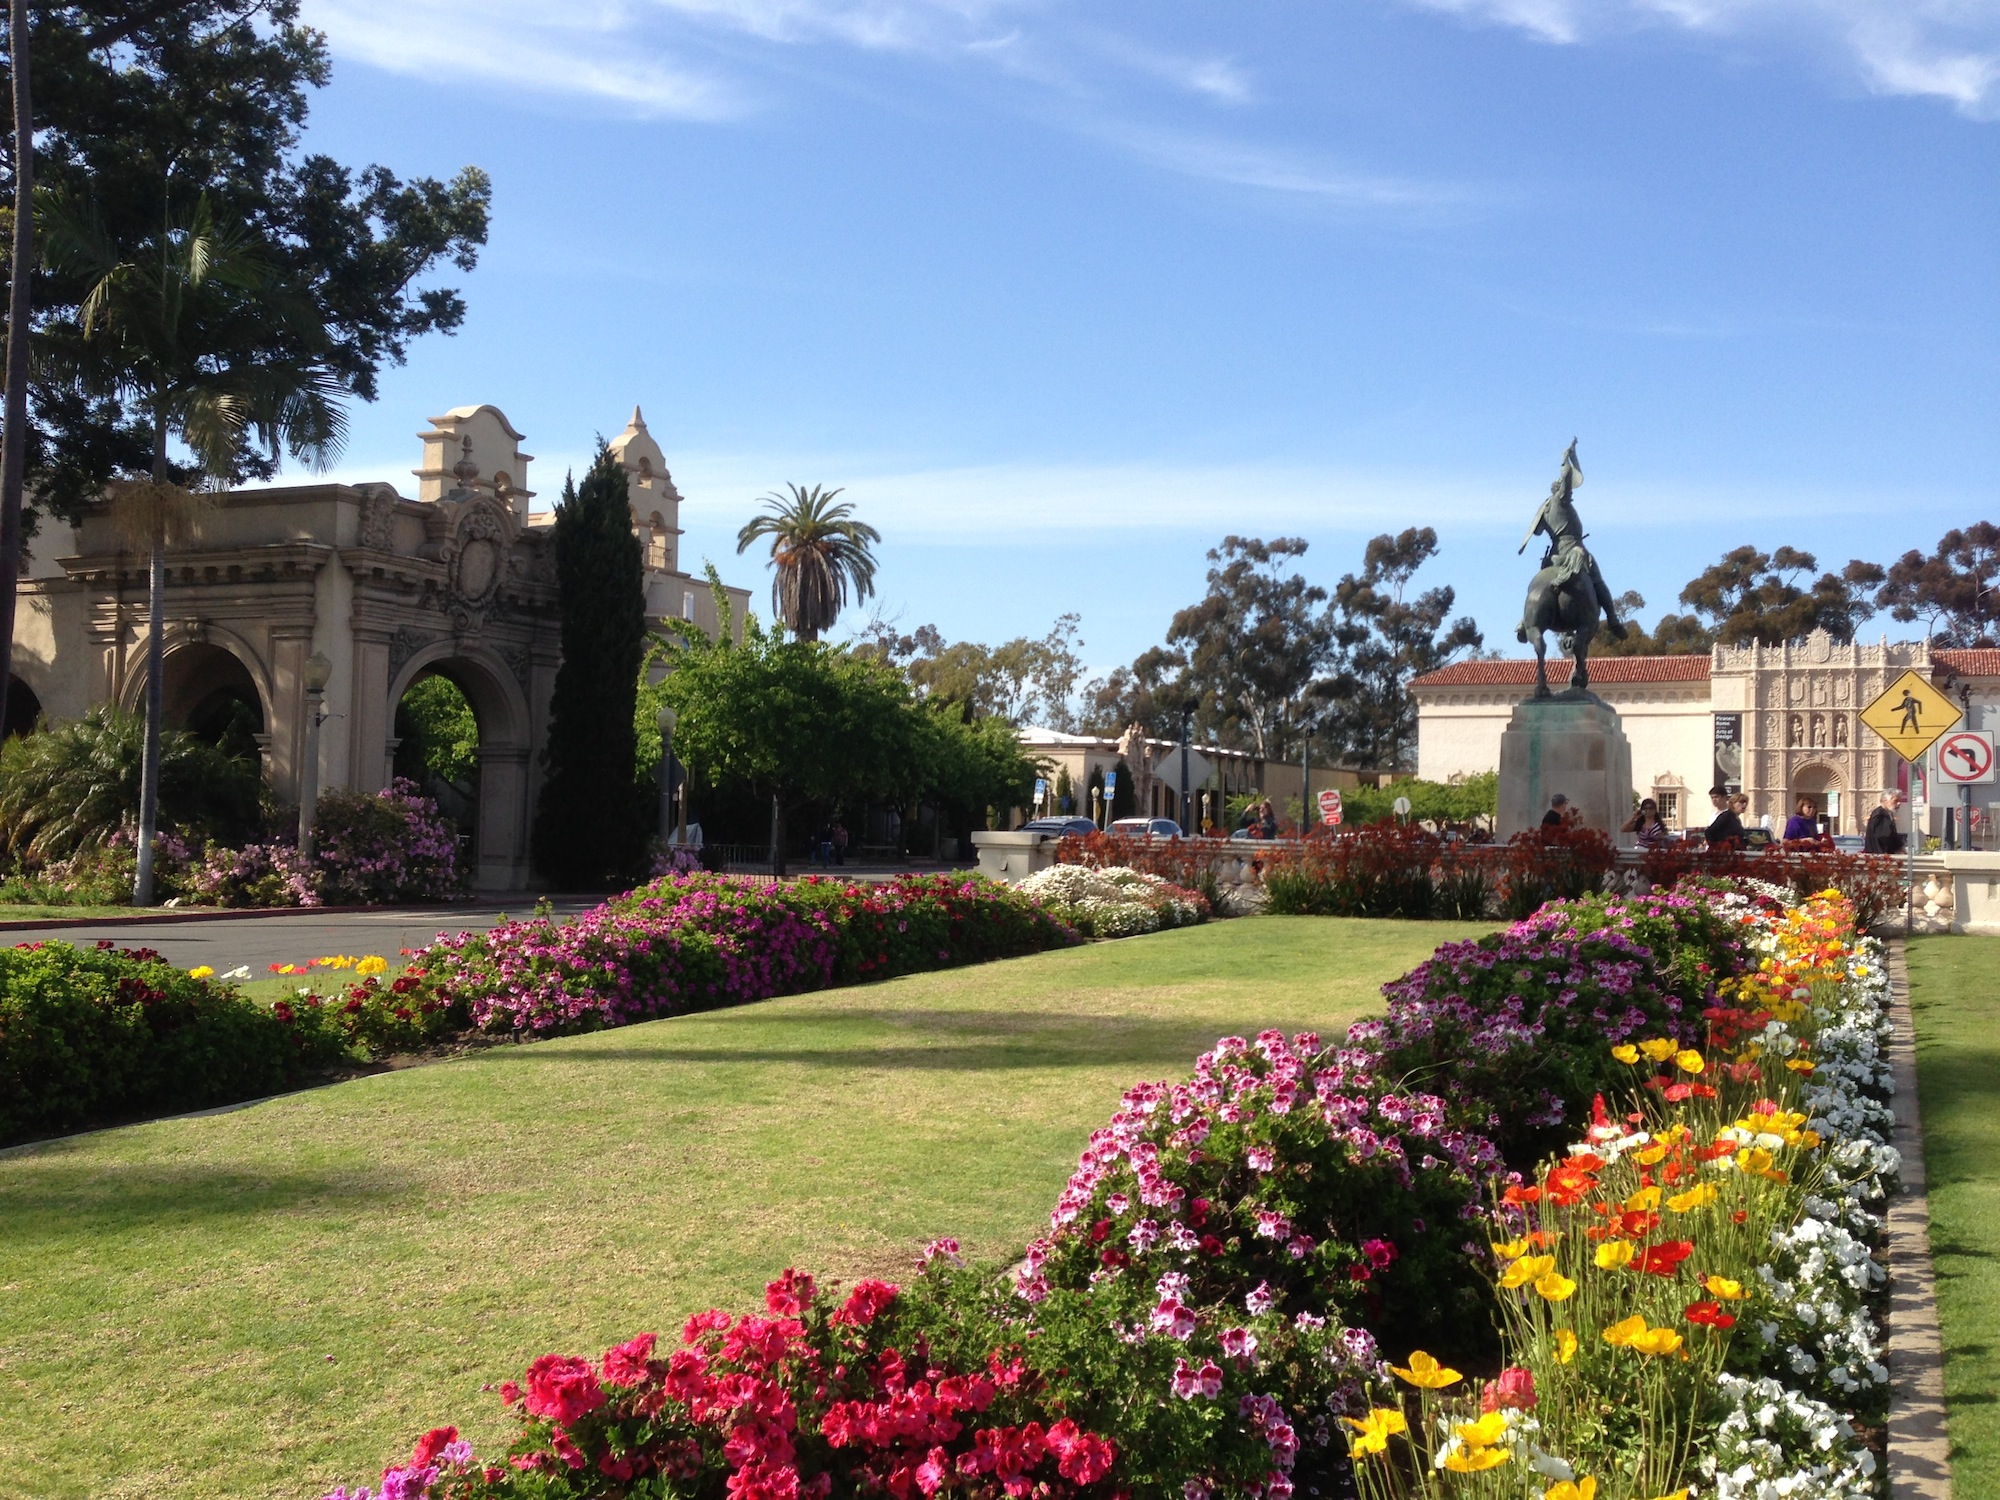 Top San Diego Museums: See reviews and photos of museums in San Diego, California on TripAdvisor.